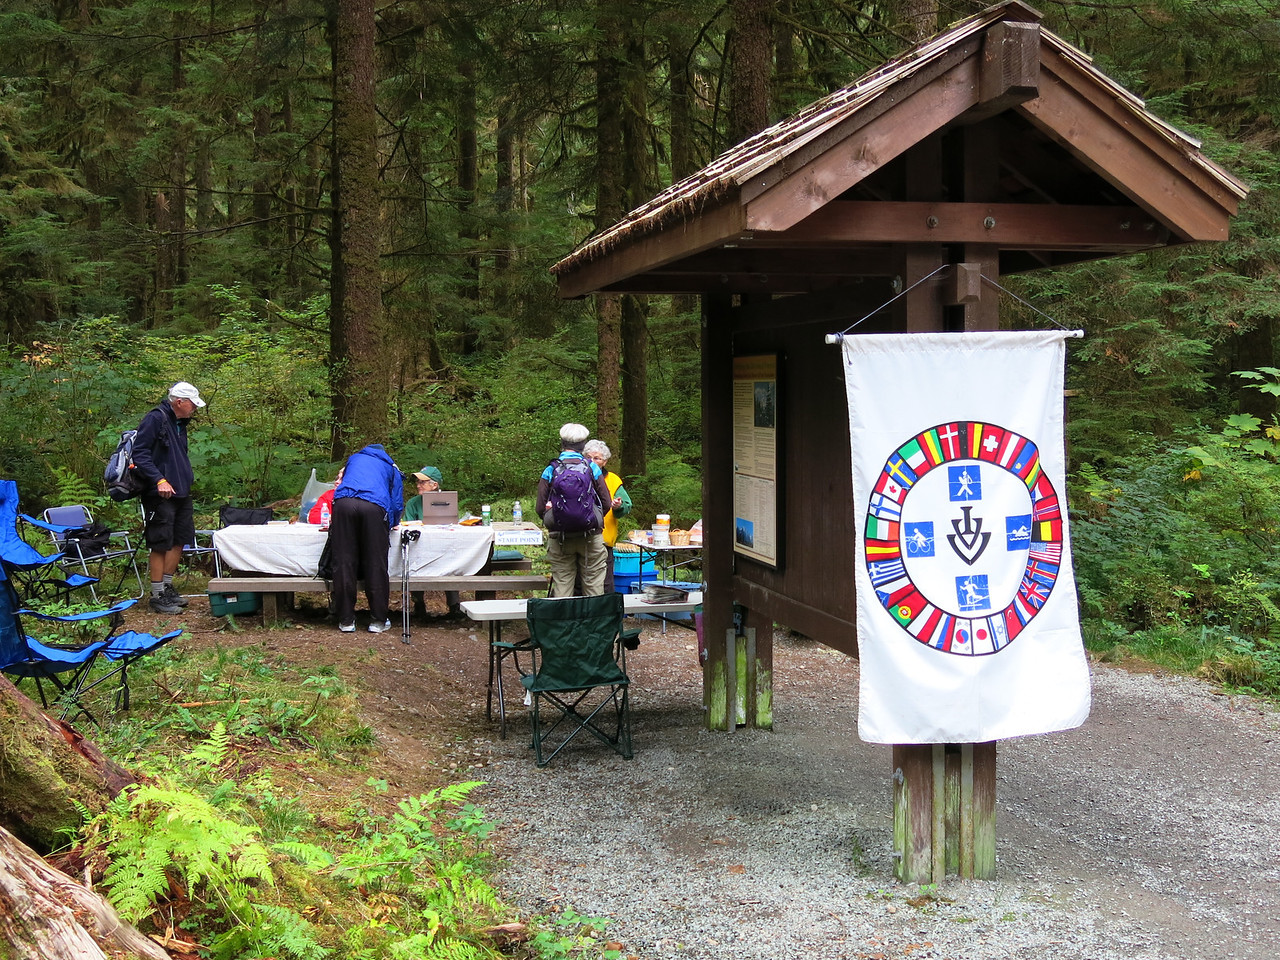 This hike to Lake Twenty-two was a one day walking event sponsored by the Four Plus Foolhardy Folks Volkssport Club of Washington state.